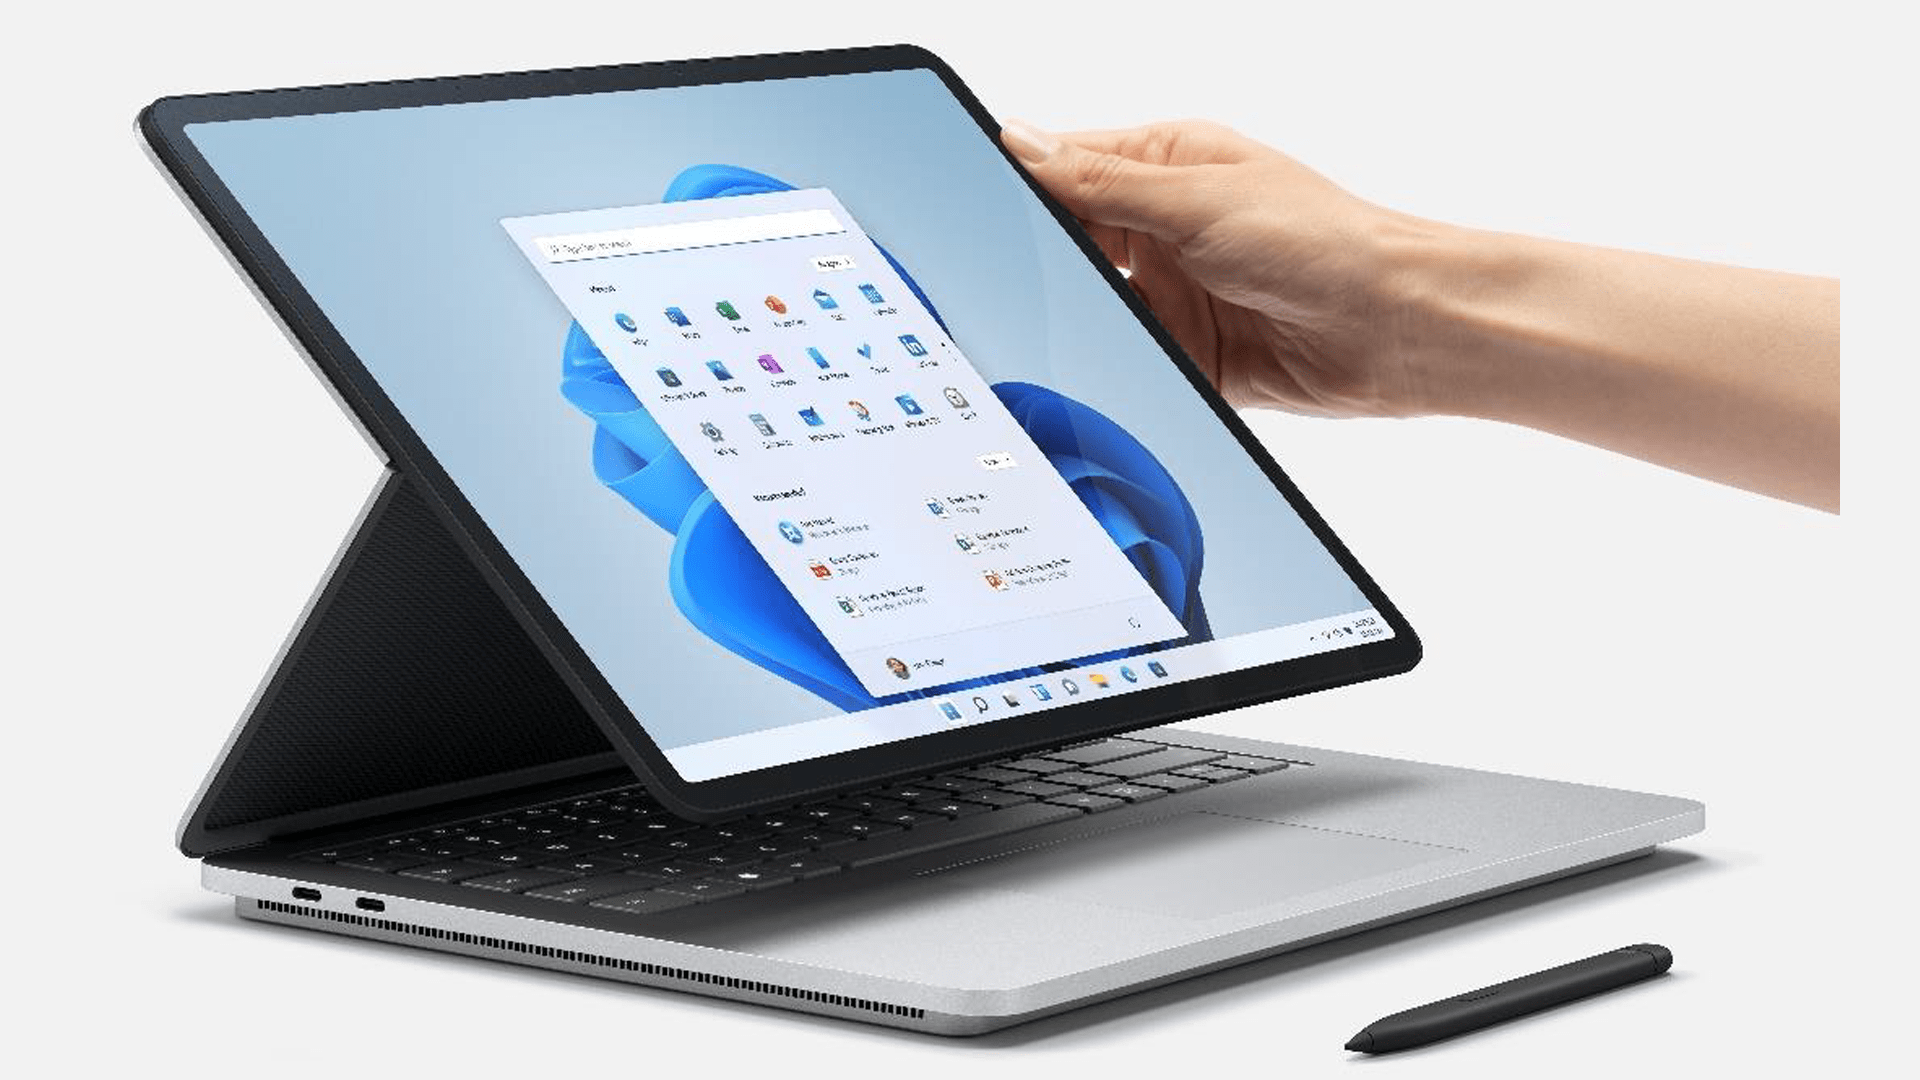 Microsoft, Tablet, Notebook, Laptop, Surface, Microsoft Surface, 2-in-1, Windows 11, Stylus, Convertible, Surface Laptop, Surface Laptop Studio, Surface Slim Pen 2, 35 Watt, Surface Book 4, Intel Core i5-11300H, Intel Core i7-11370H, Intel Core H35, Dynamic Woven Hinge